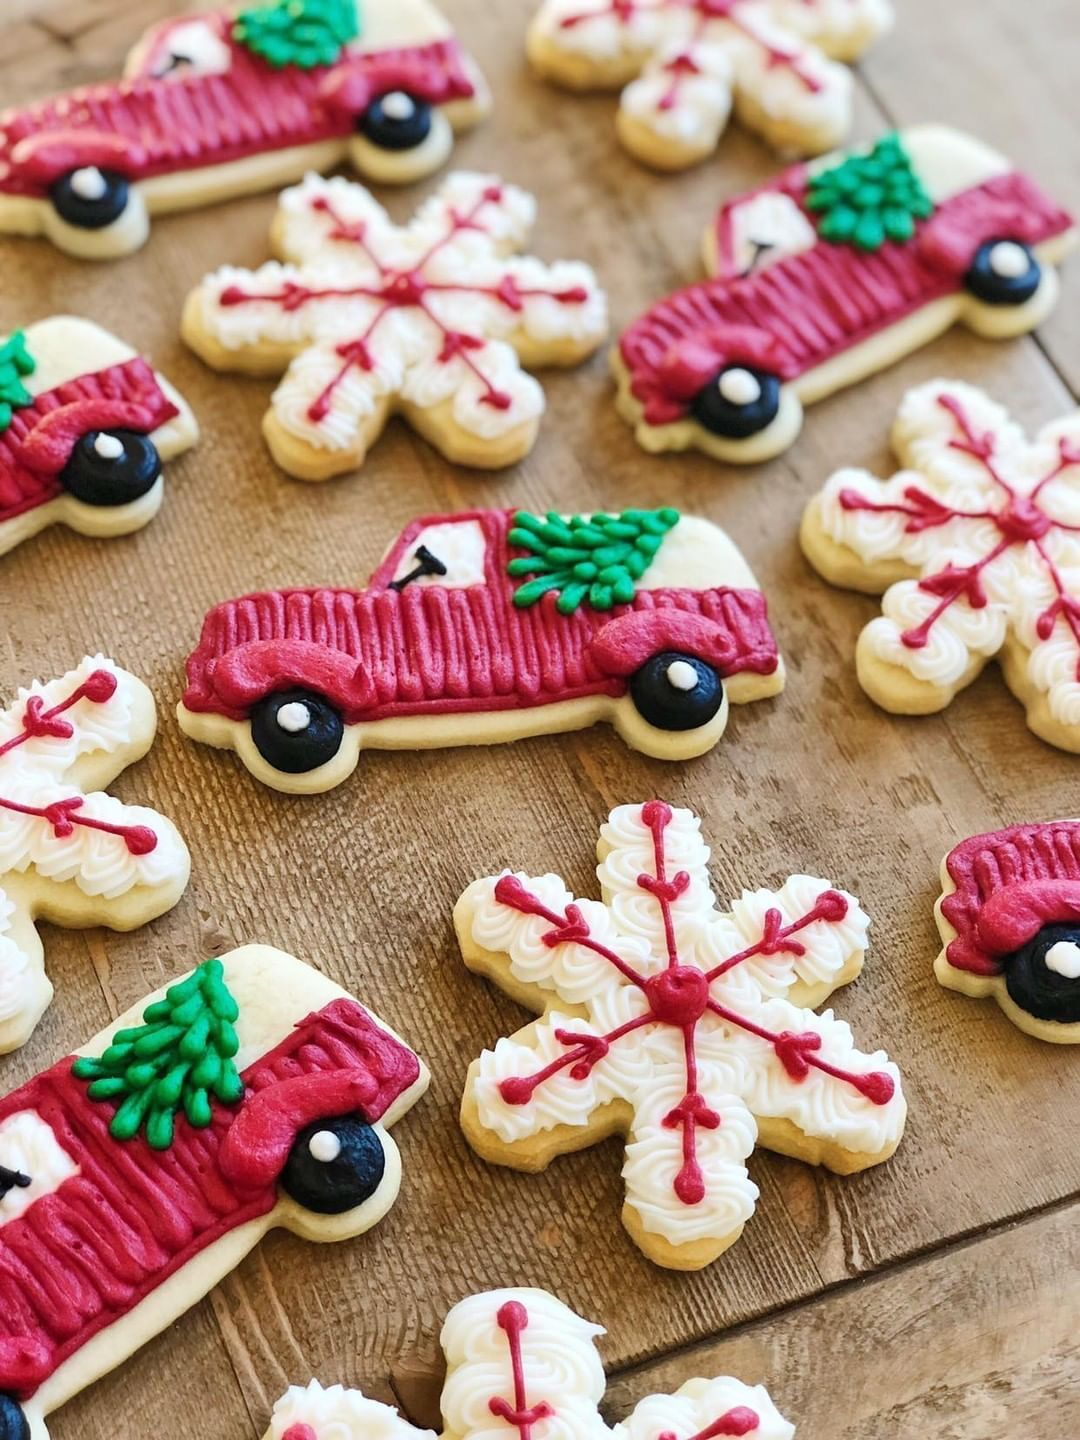 70 Best Christmas Cookie Recipes 2018 Easy Ideas For Holiday Cookies